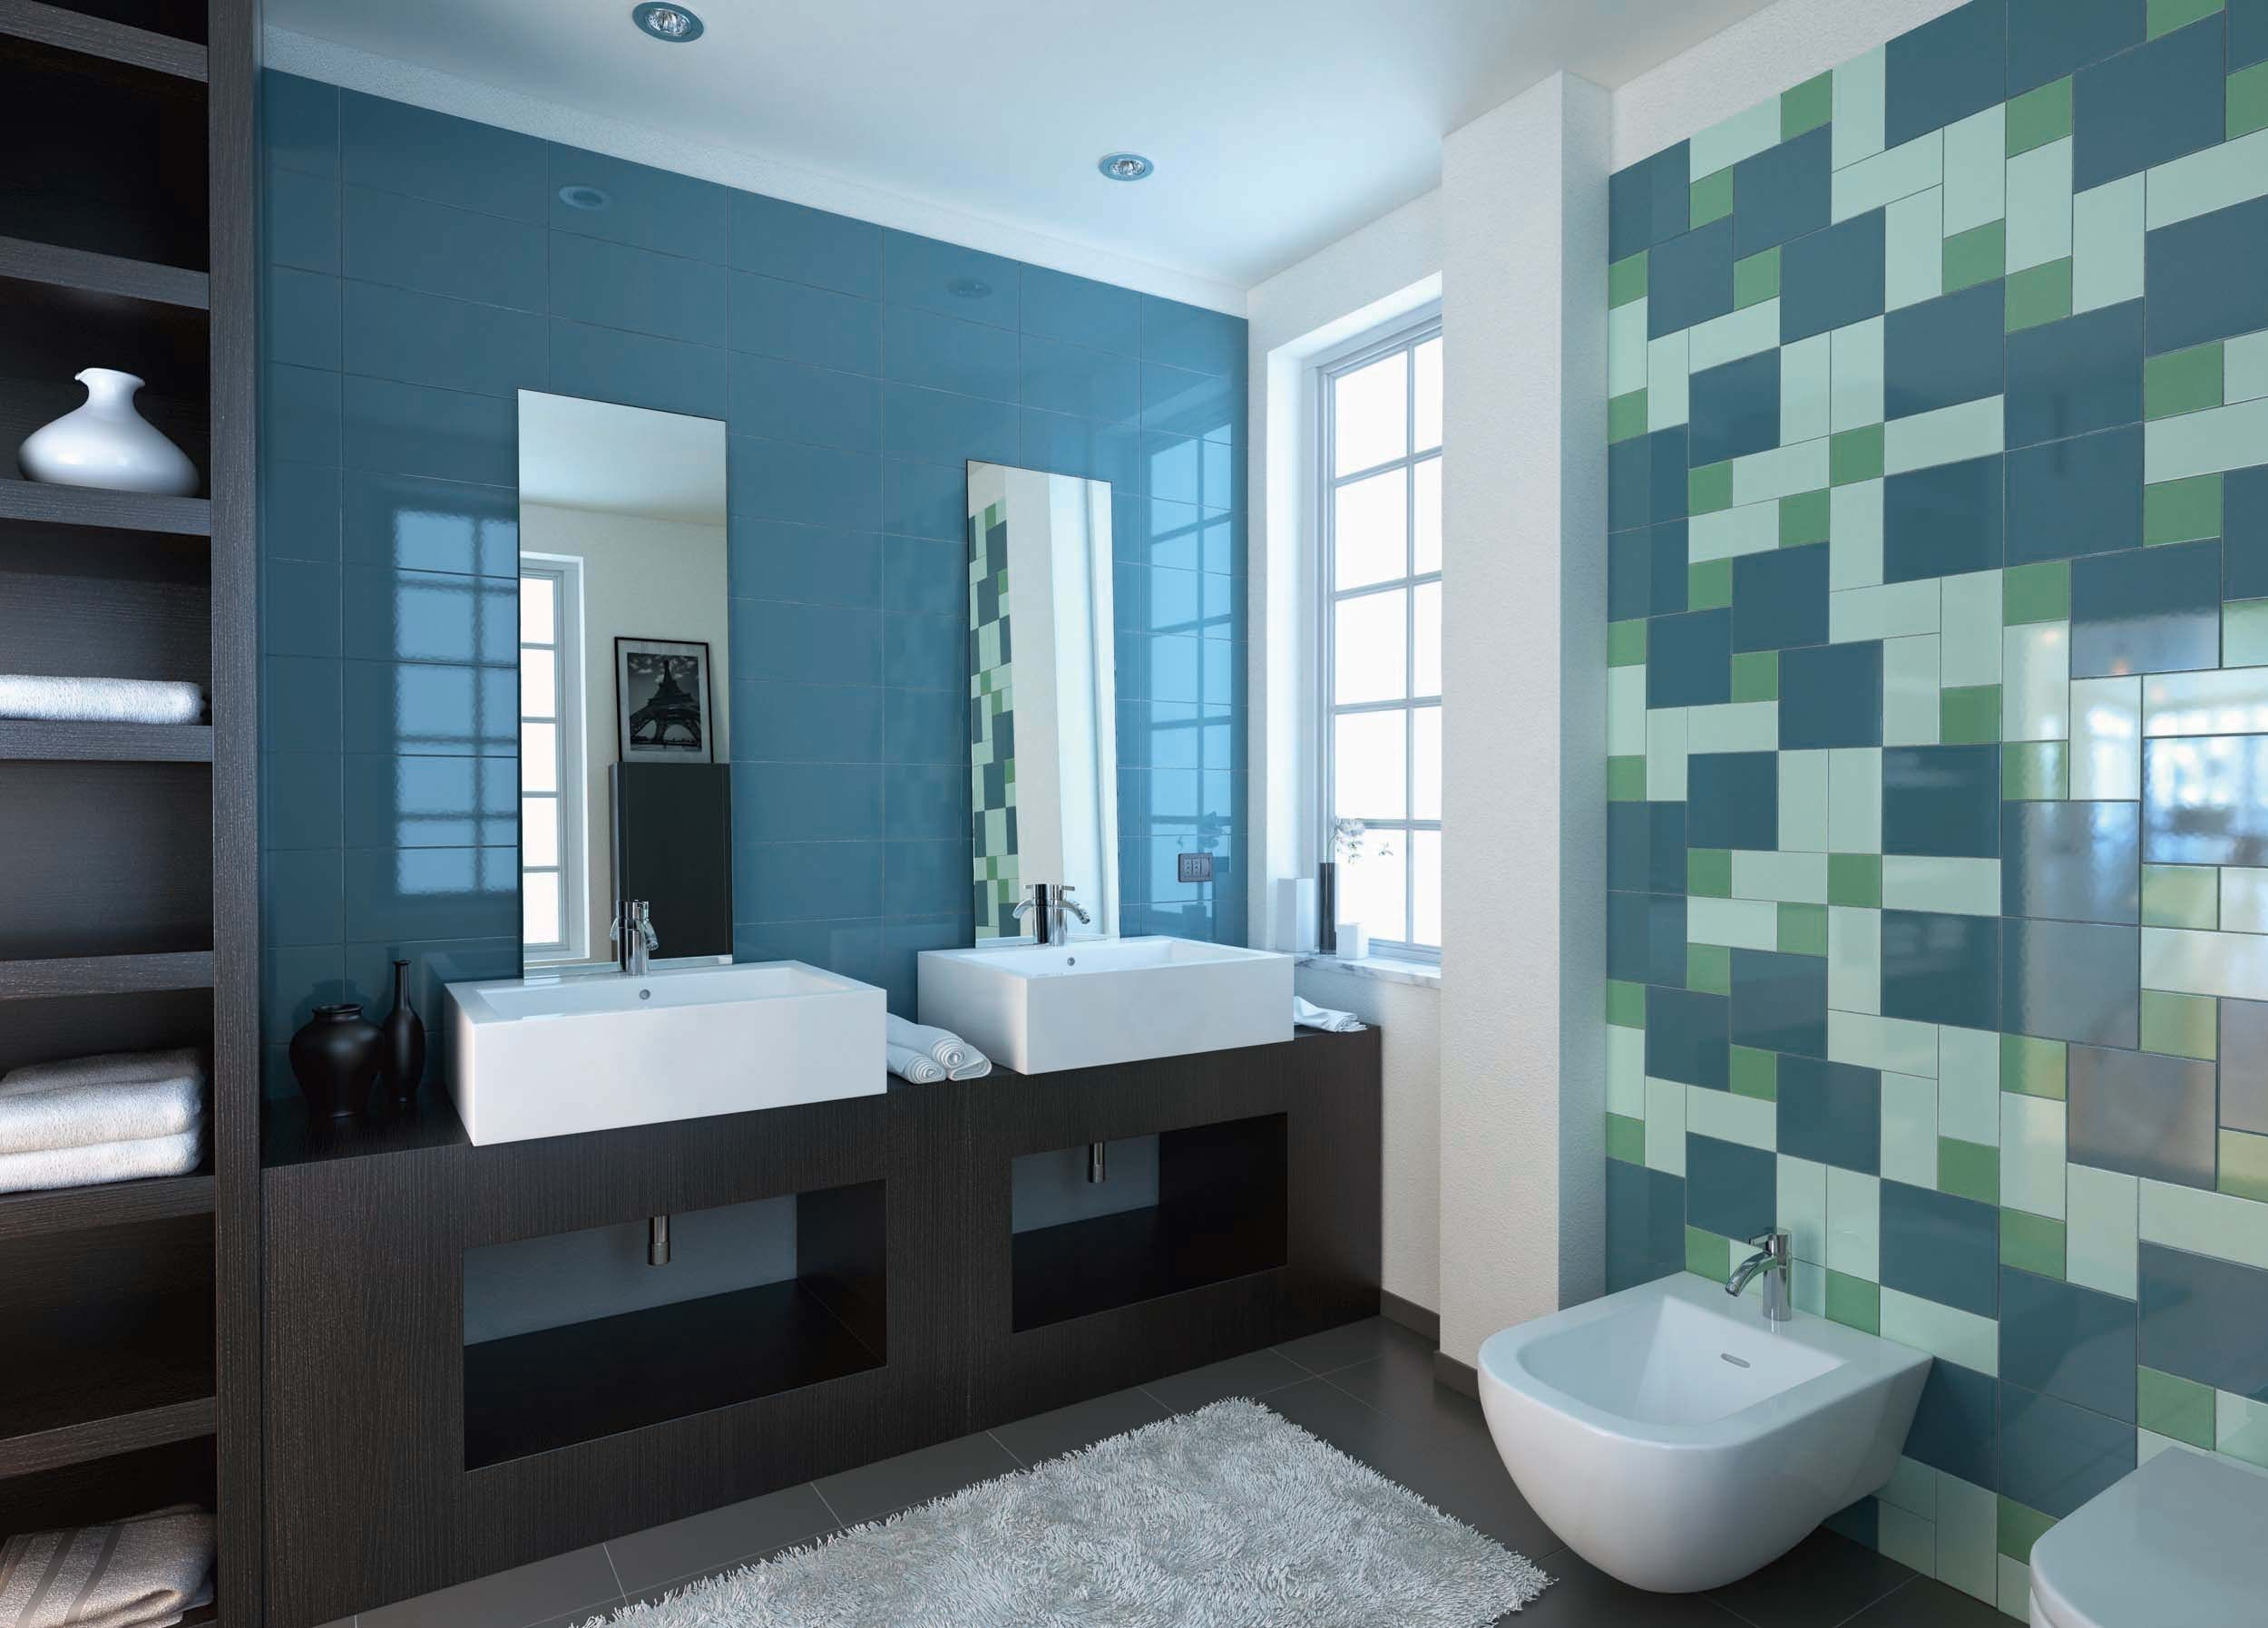 vogue ceramica | toilet | Pinterest | Wall tiles, Frosting and Walls